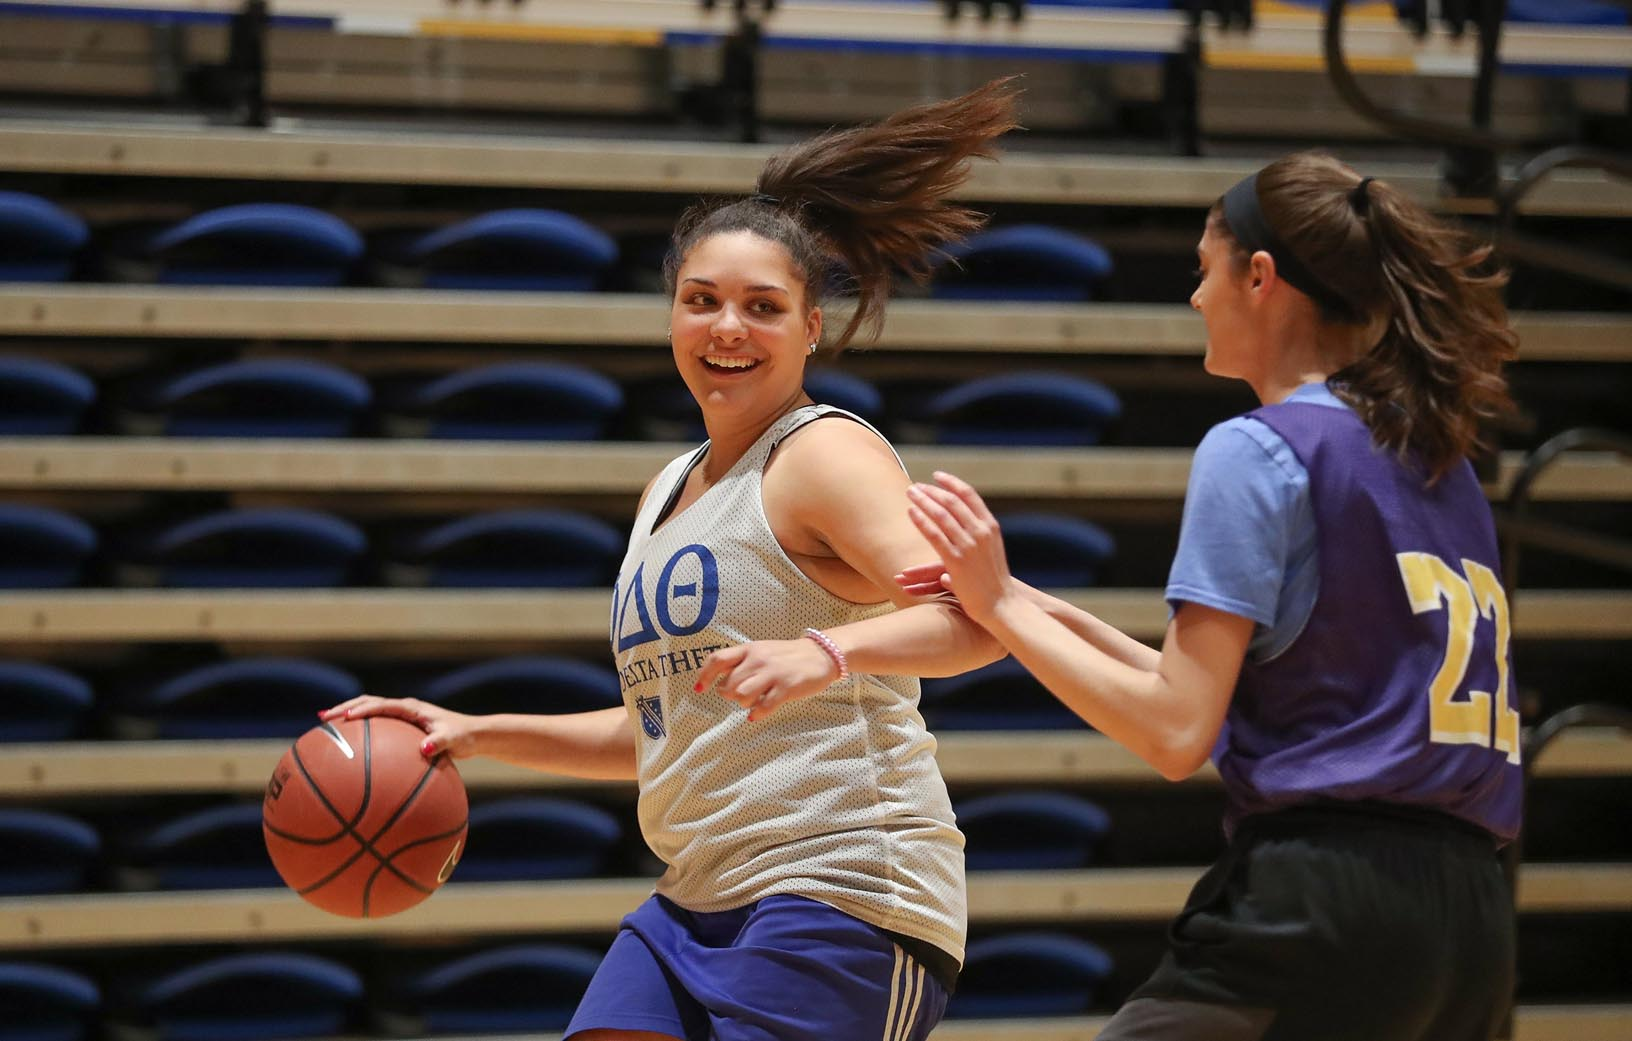 Intramural sports are a popular pastime at UNK. More than 1,200 students participated last academic year. (UNK Communications photos)